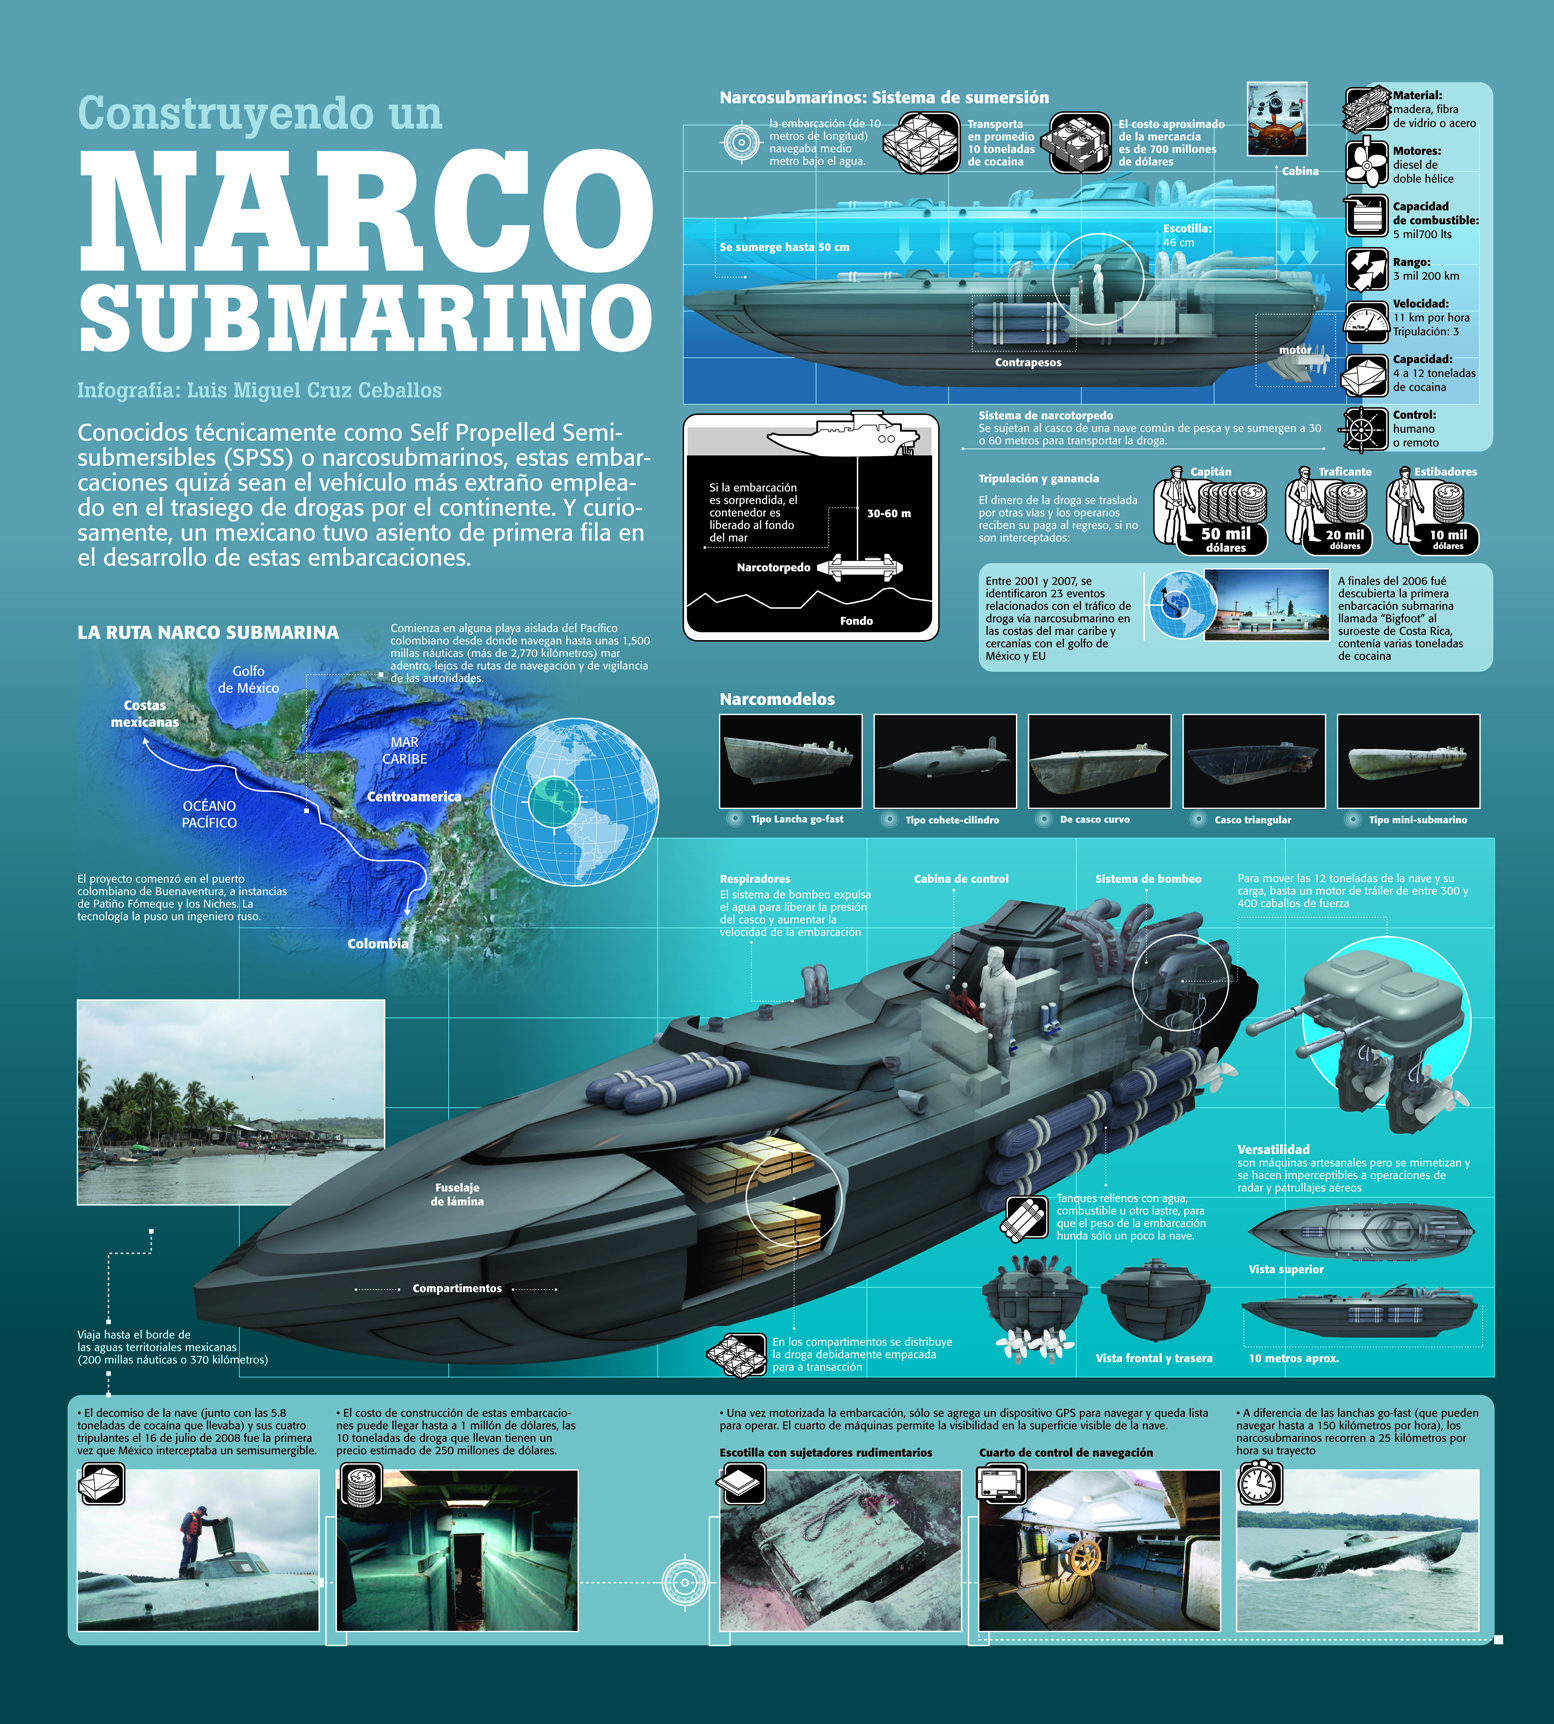 http://visual.ly/narcosubmarinos